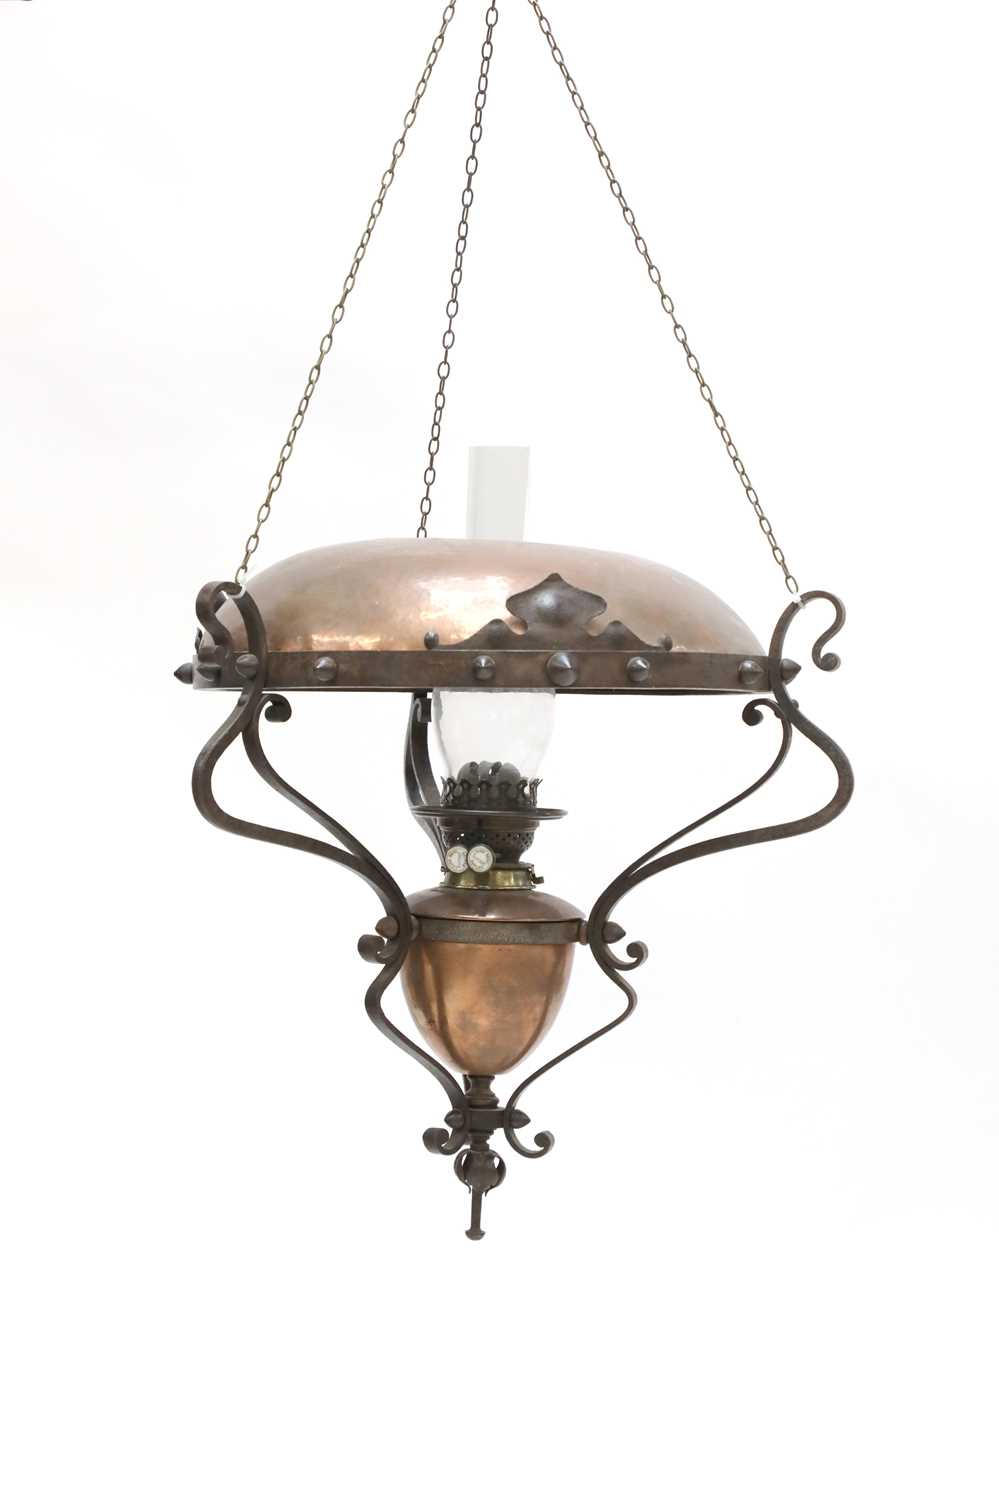 Lot 39 - An Arts and Crafts hanging copper oil lamp